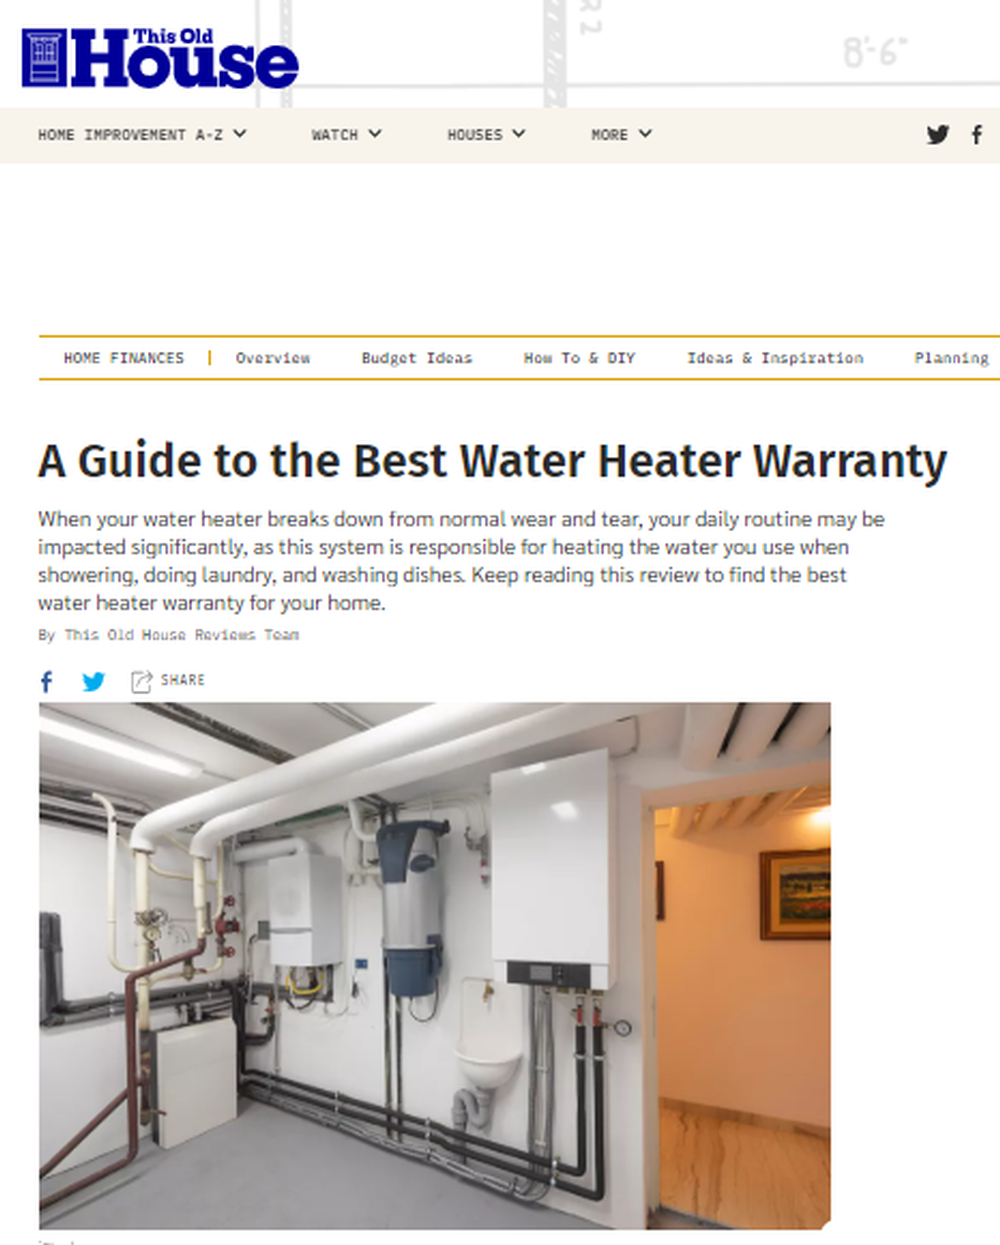 A_Guide_to_the_Best_Water_Heater_Warranty_This_Old_House.png